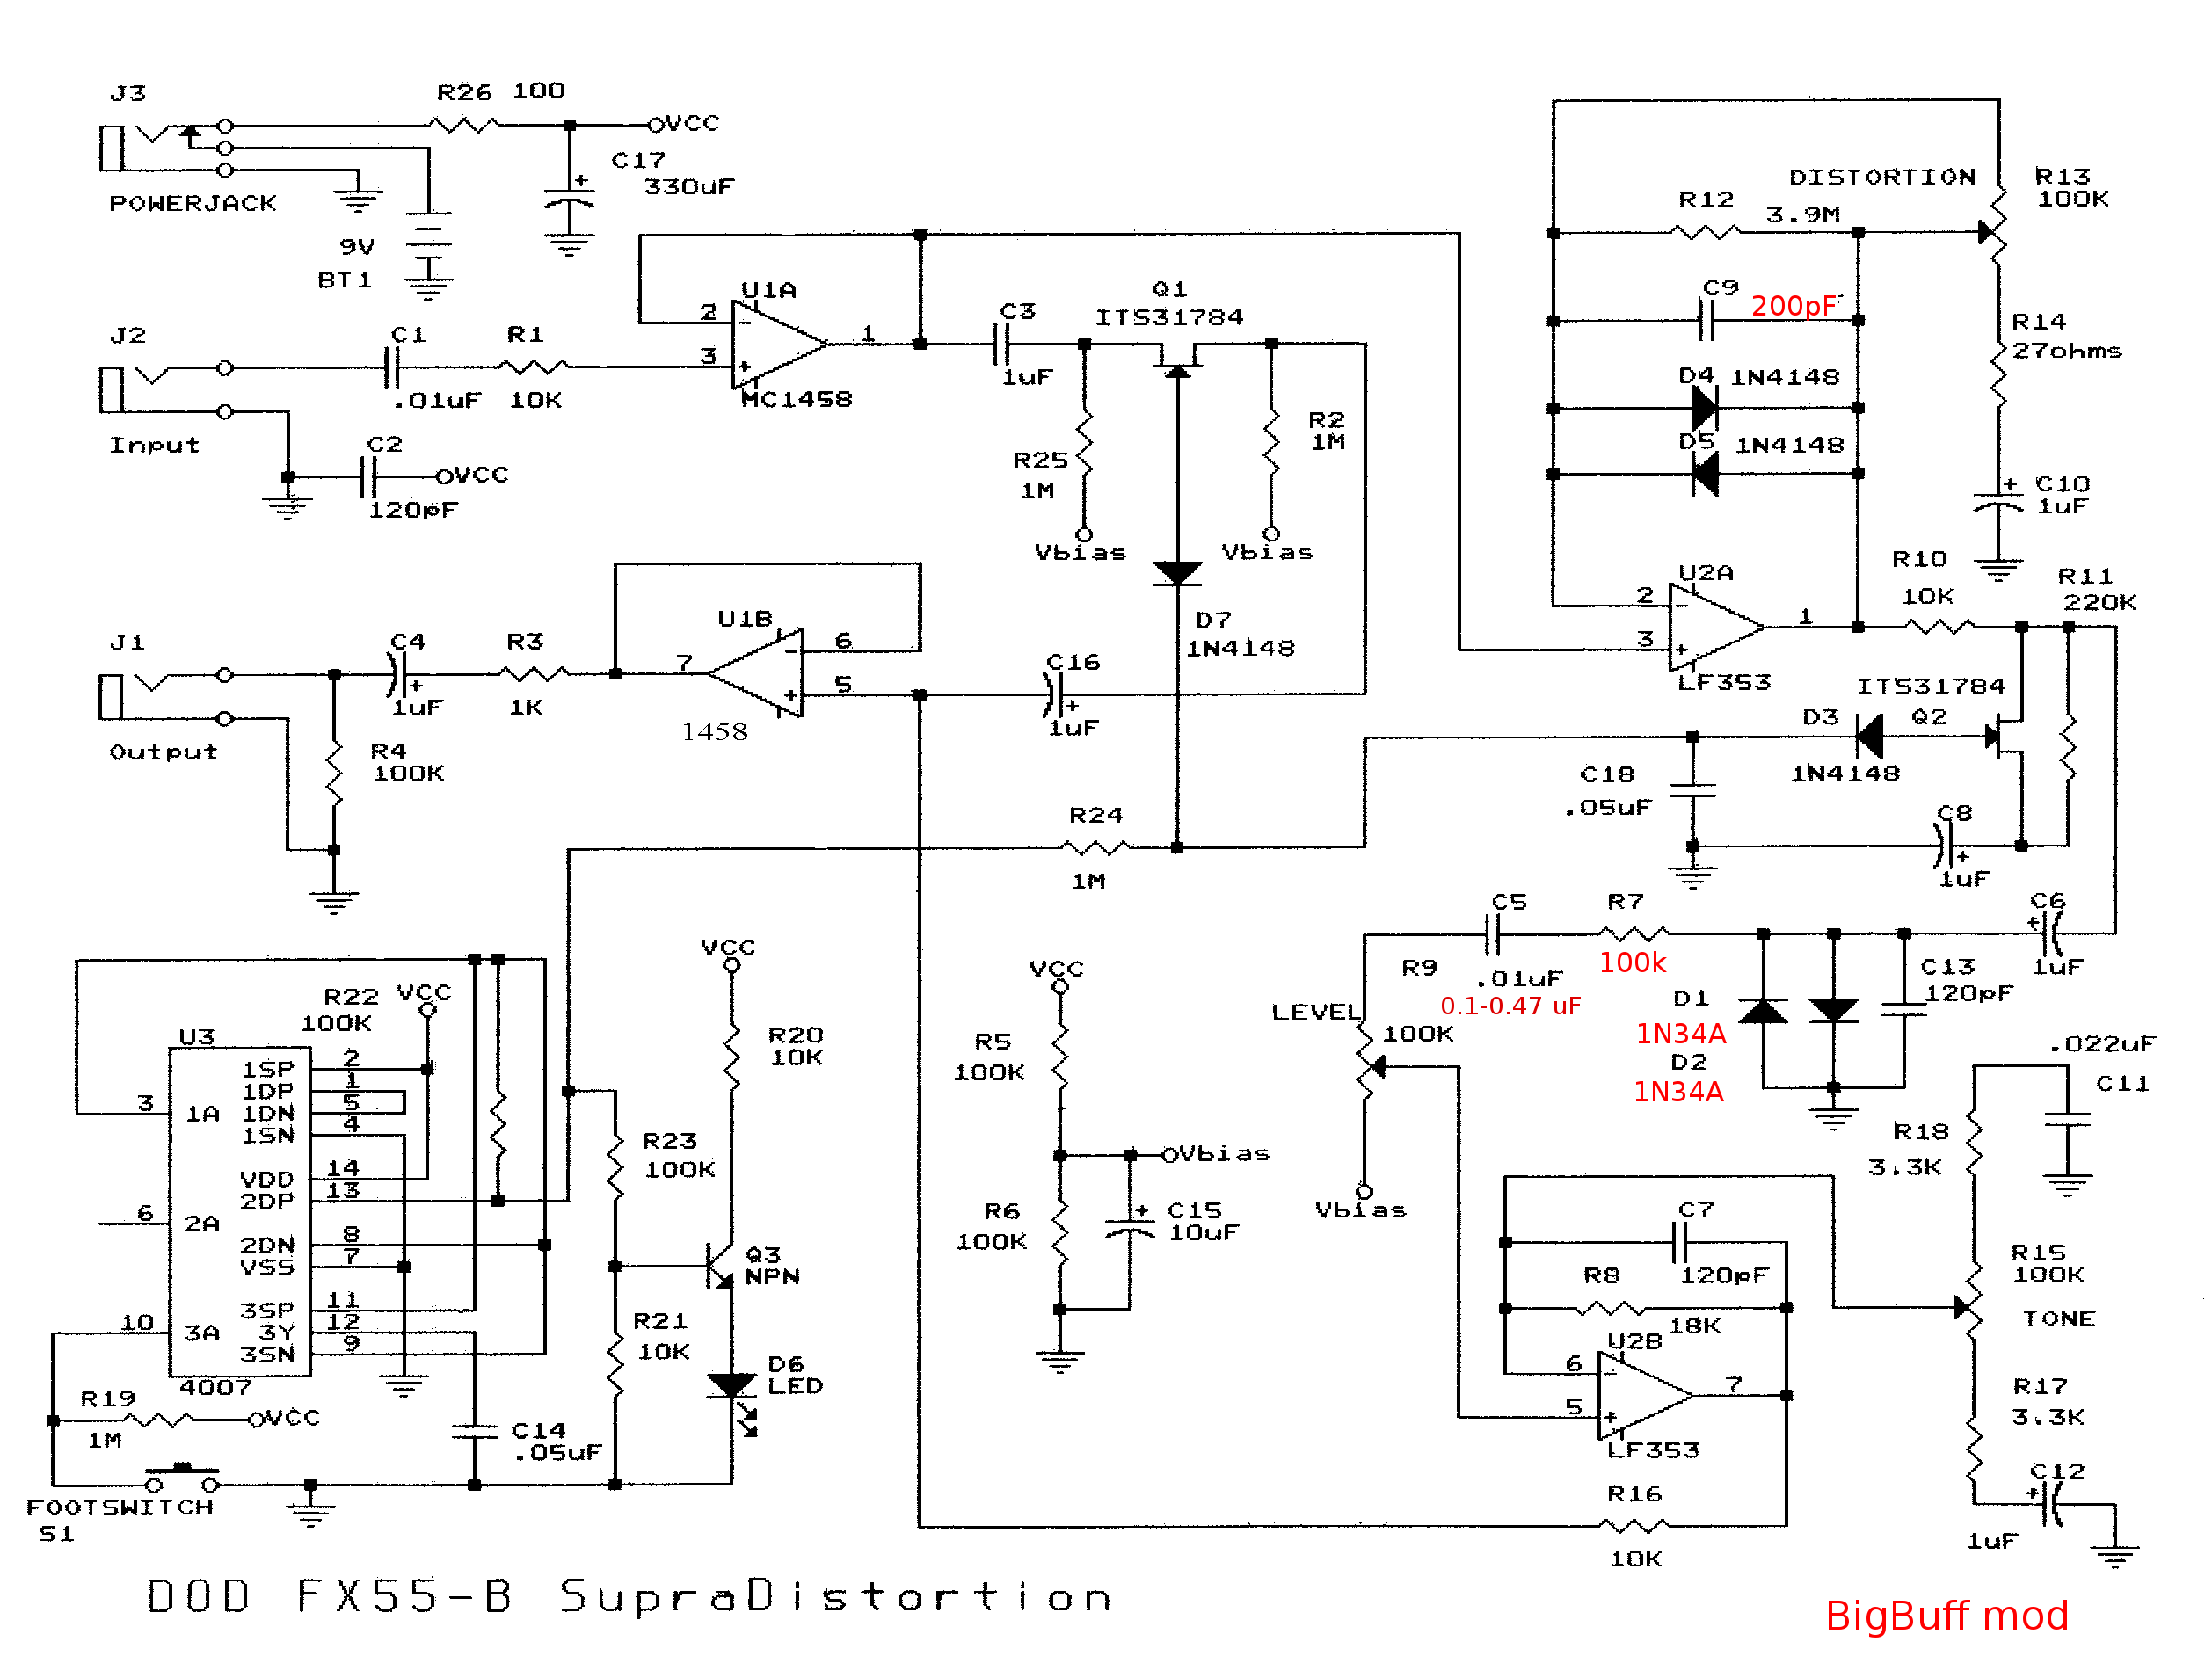 massive mods wiring diagrams wiring diagram library Auto Wiring Diagrams dod fx55b supradistortion \\u2013 bigbuff mod notes to self massive mods wiring diagrams